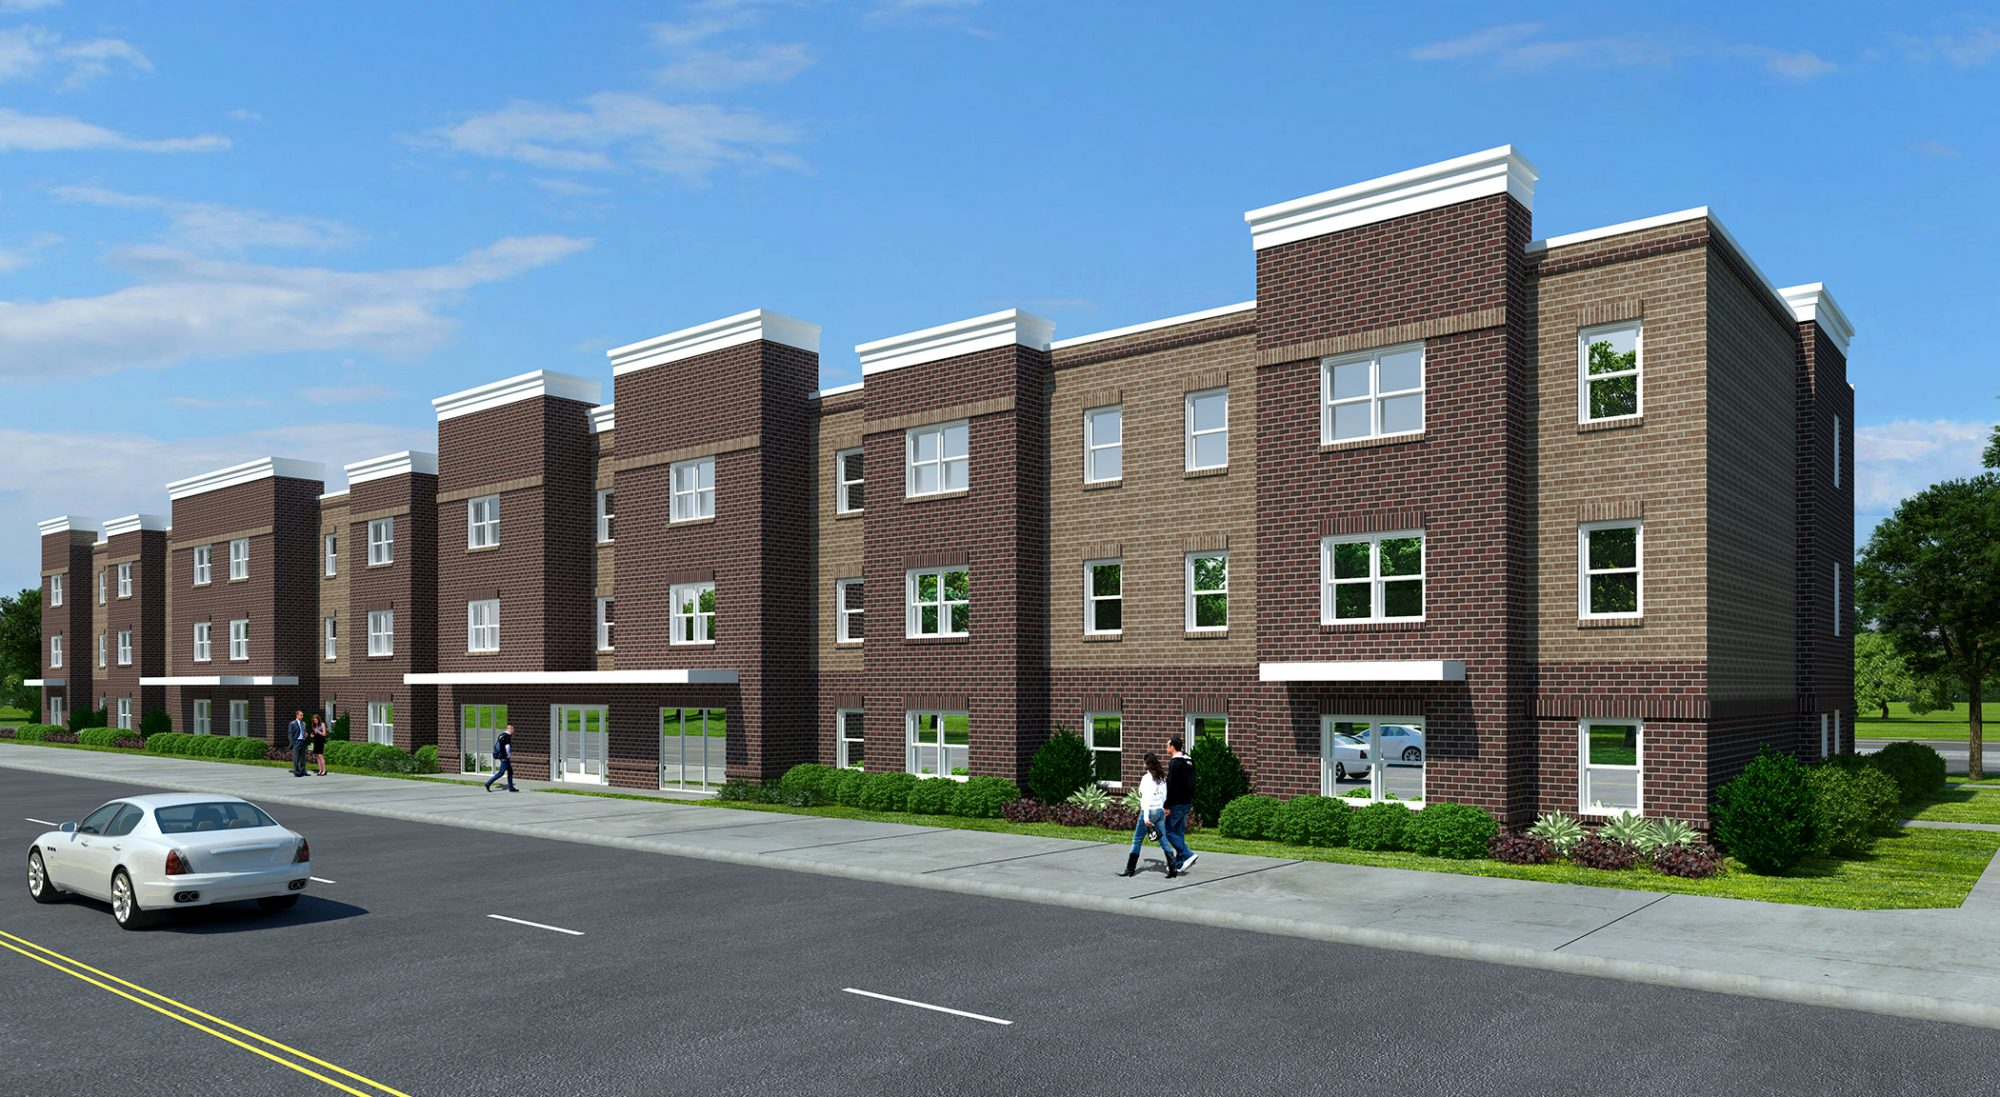 Project Image of Keokuk Senior Lofts – Senior Living